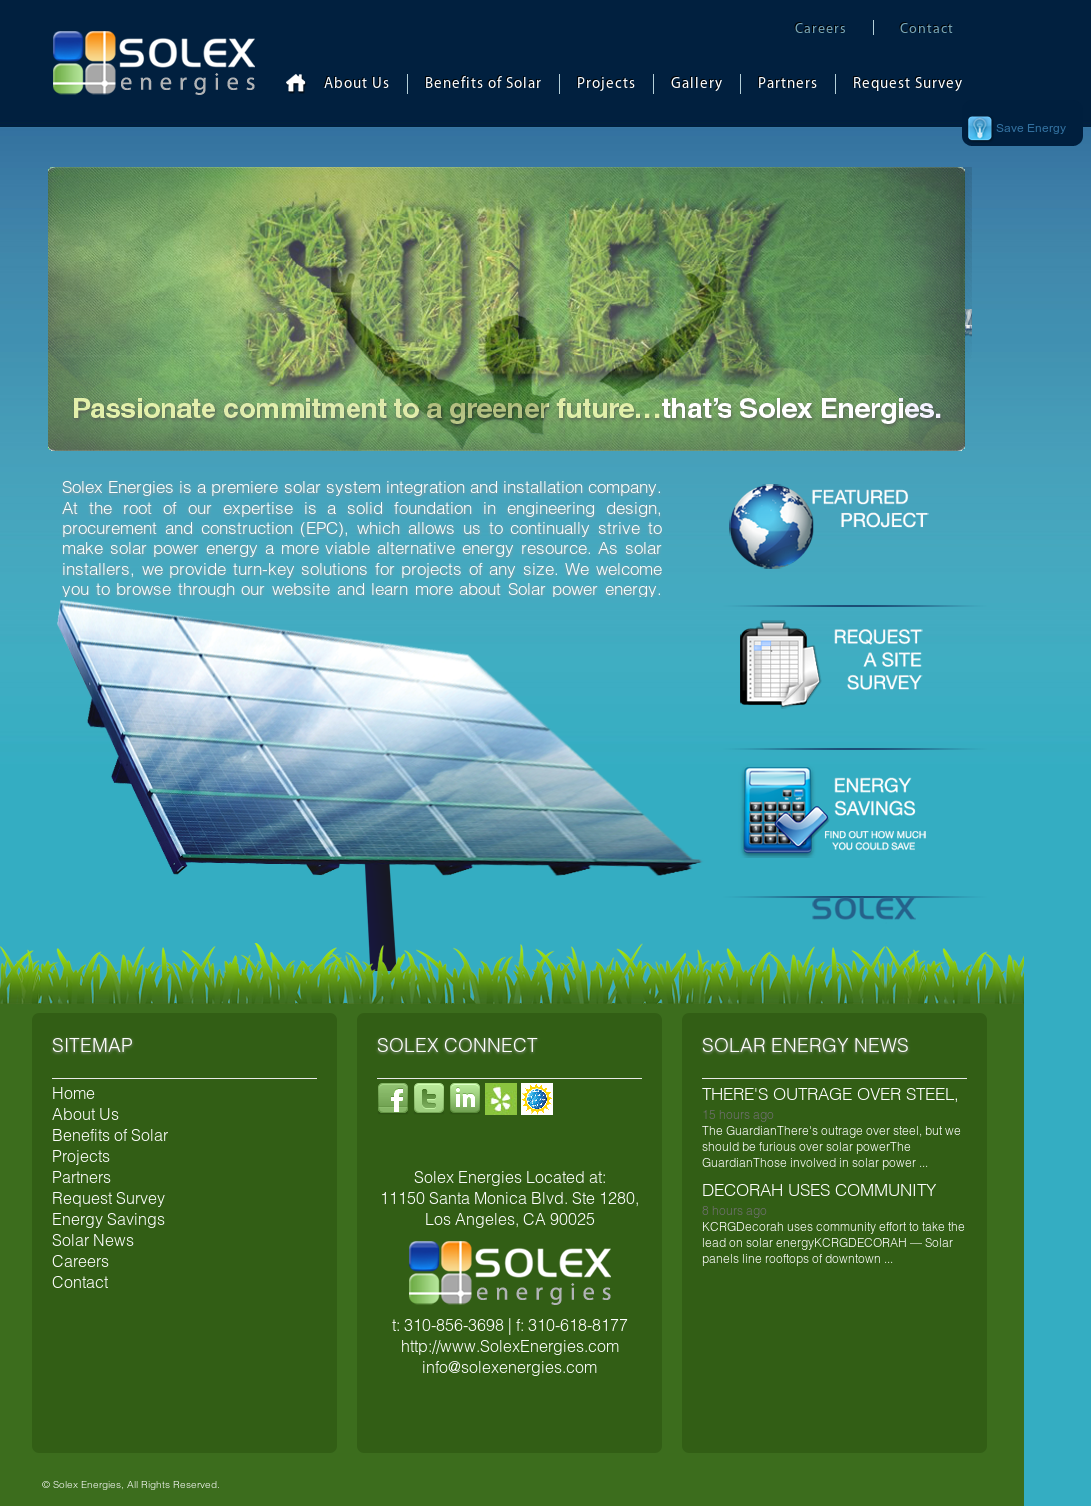 Solex Energies Competitors, Revenue and Employees - Owler Company